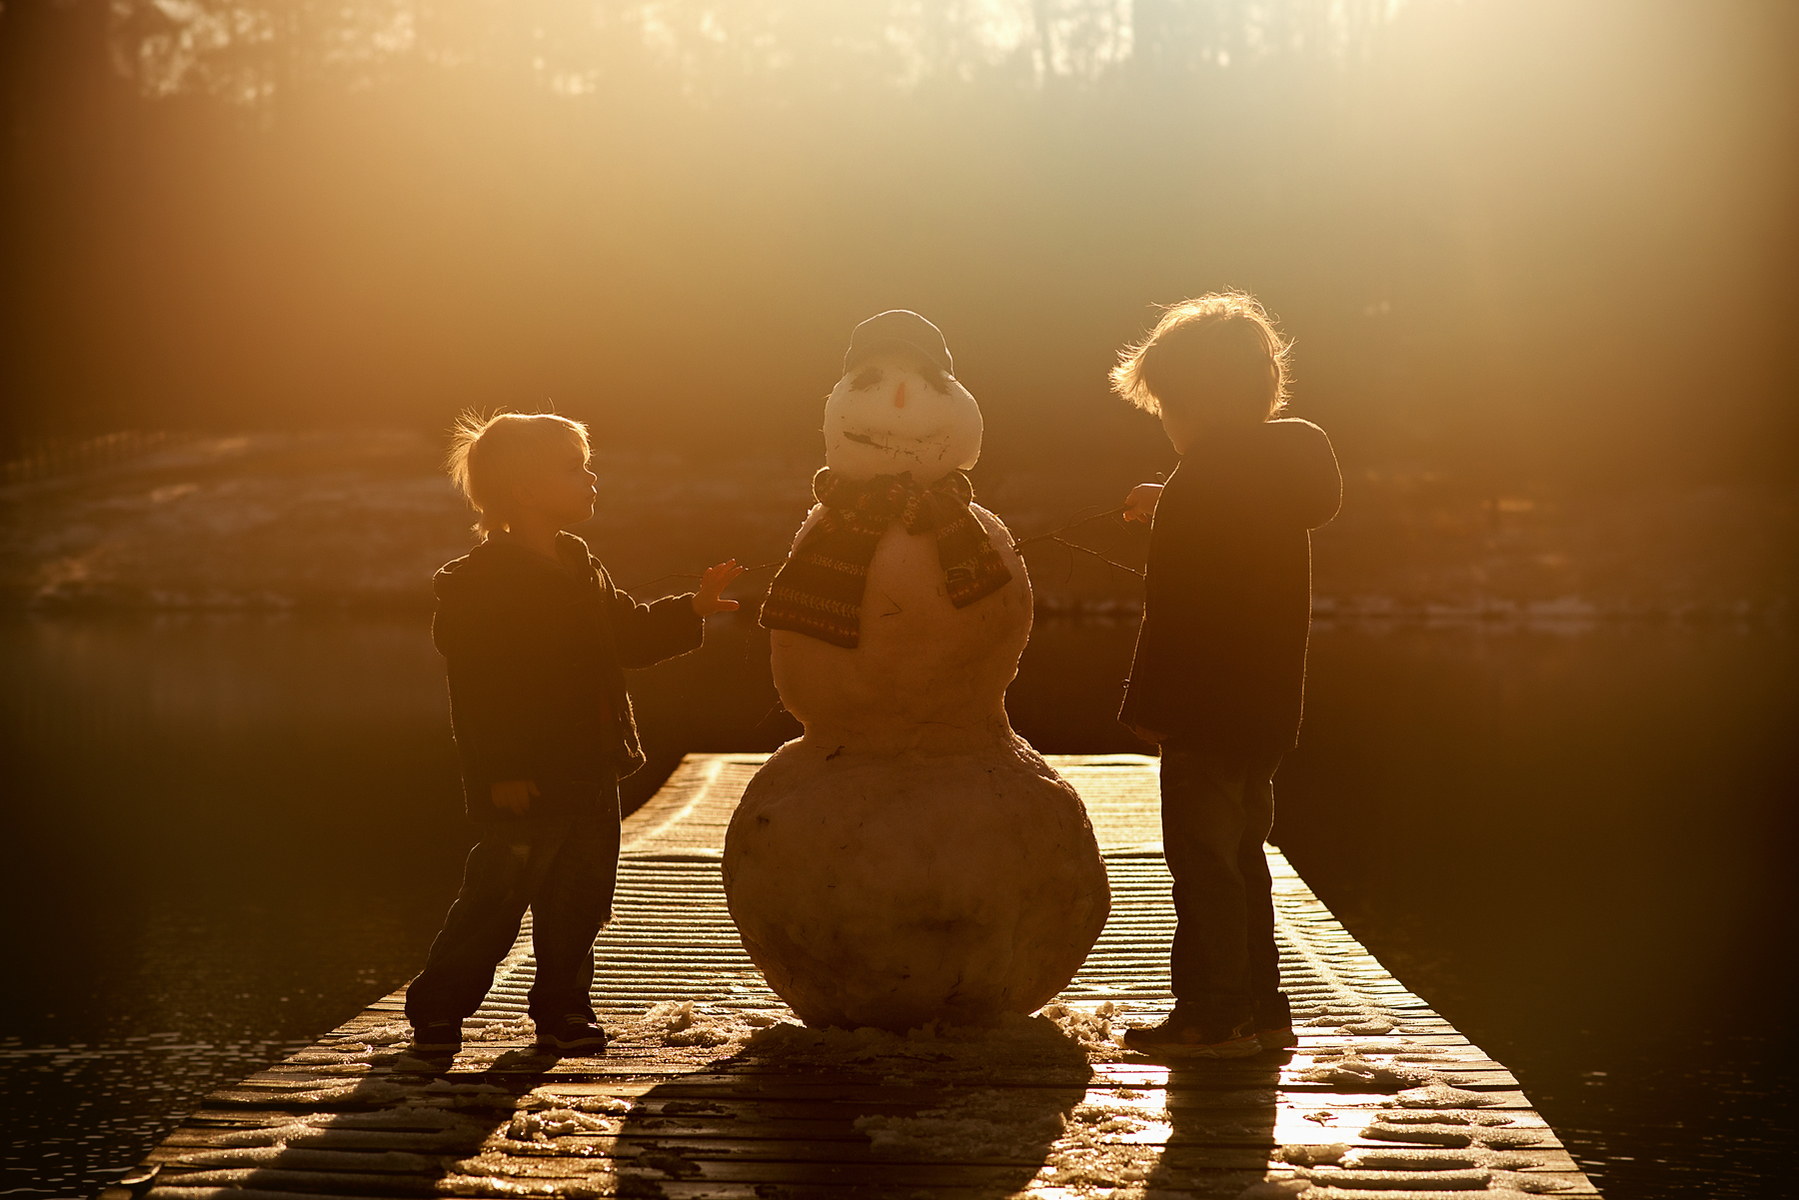 Two boys and their snowman on a dock at sunset